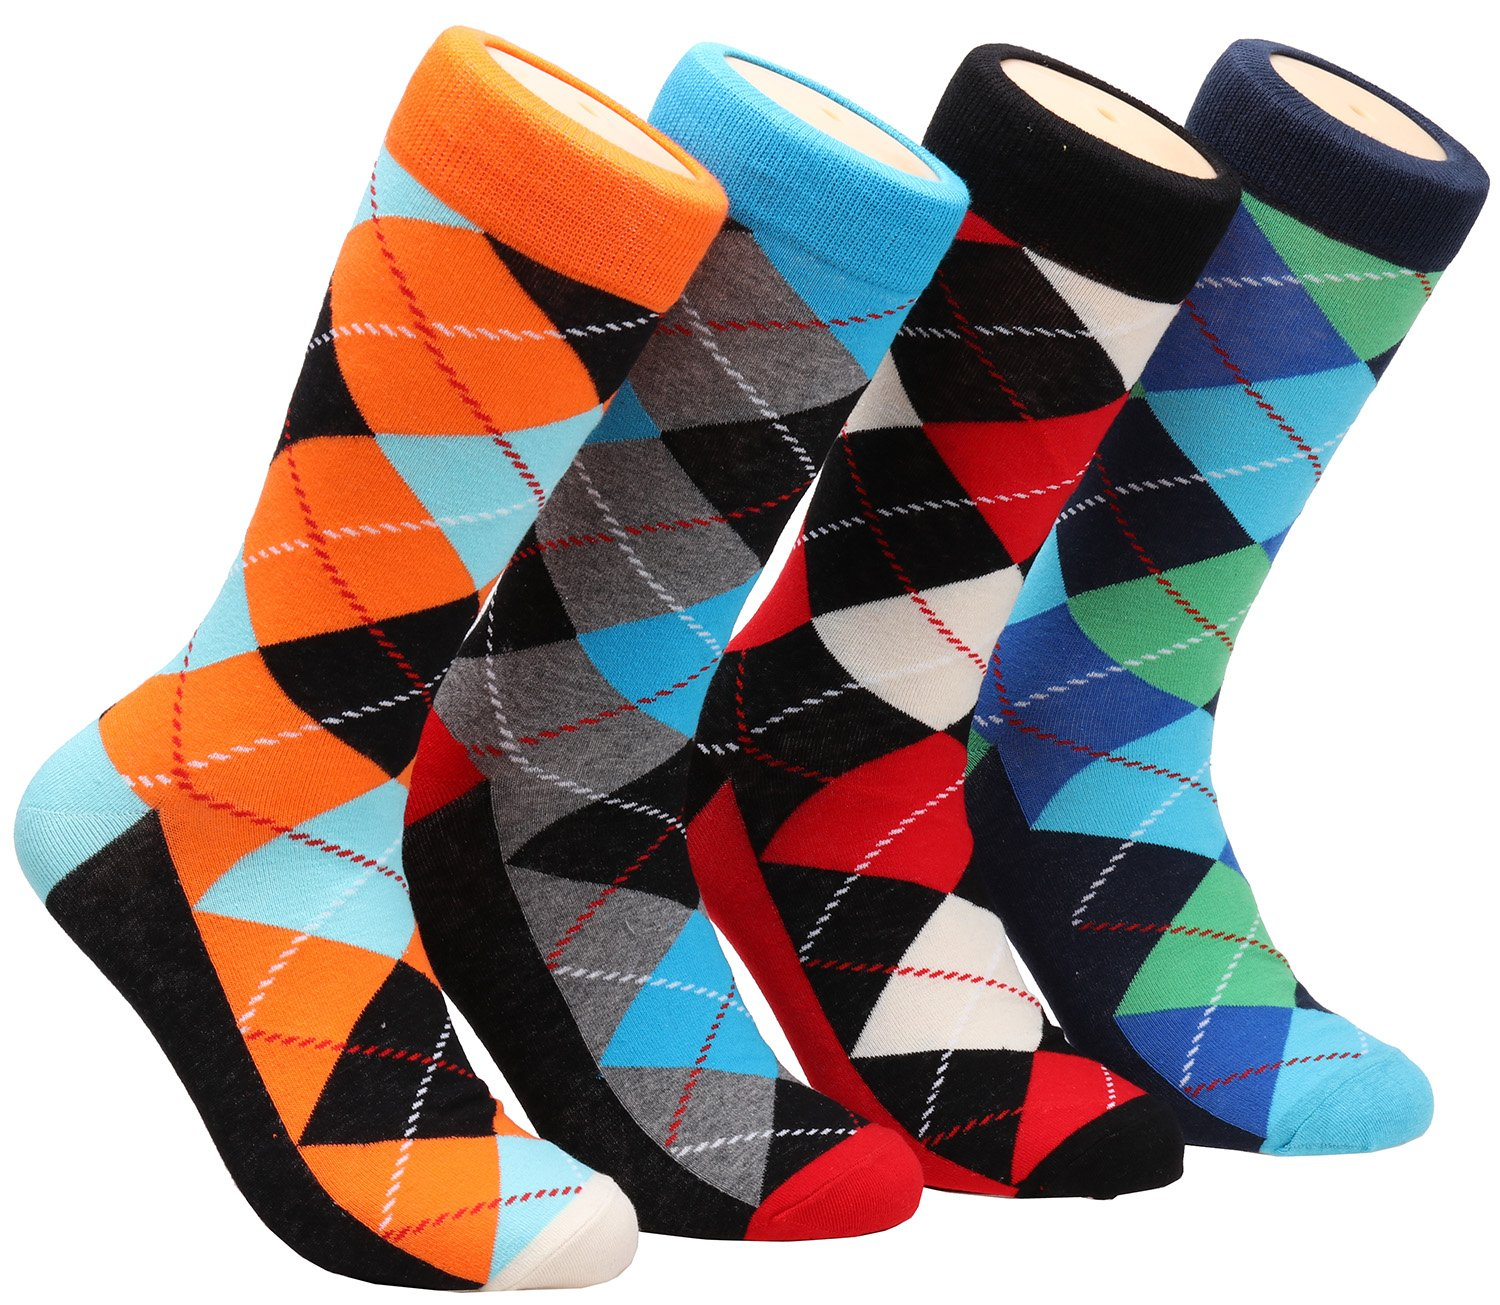 Galsang 4 Pack Cotton Argyle Business Trouser Dress Socks For Men Size 6-13 A301 (mixed color) by GALSANG (Image #1)